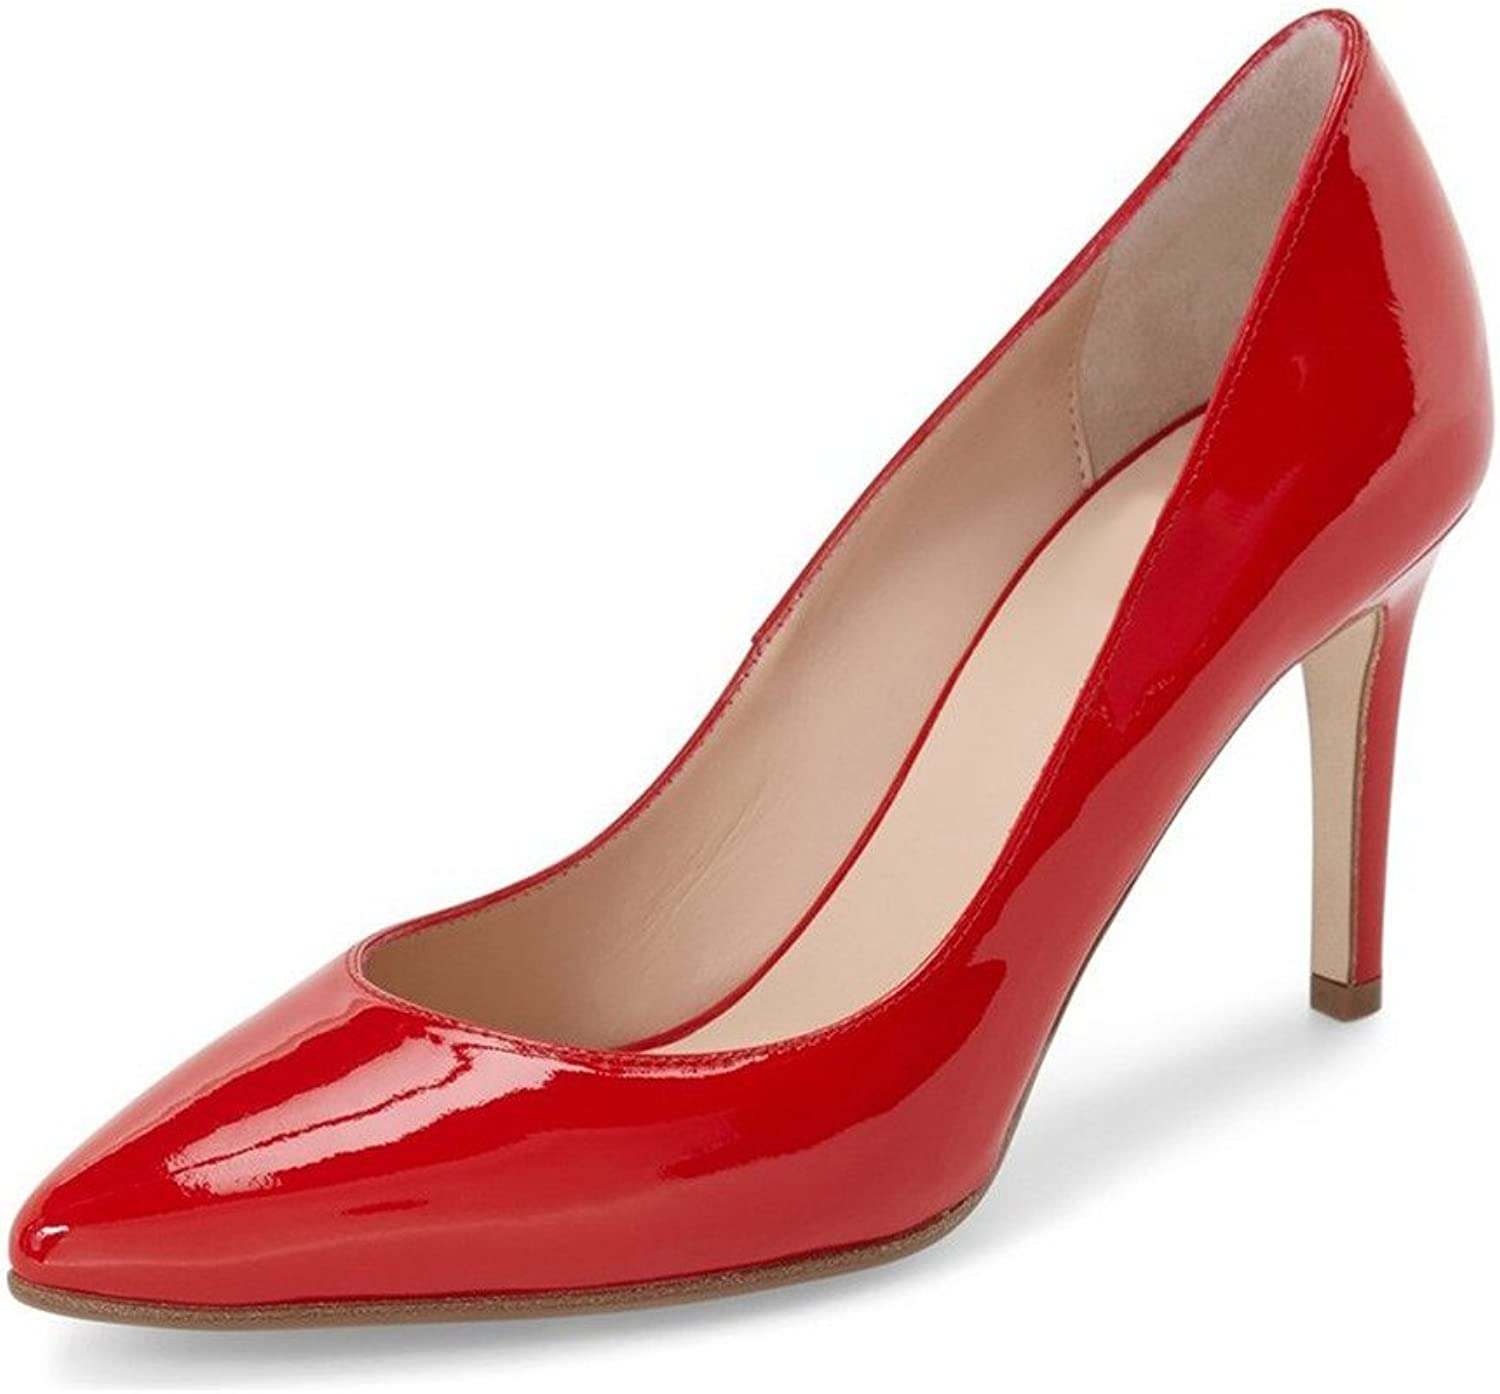 UMEXI Pointed Toe High Heels Slip On Fashion Pumps Party Stilettos for Women